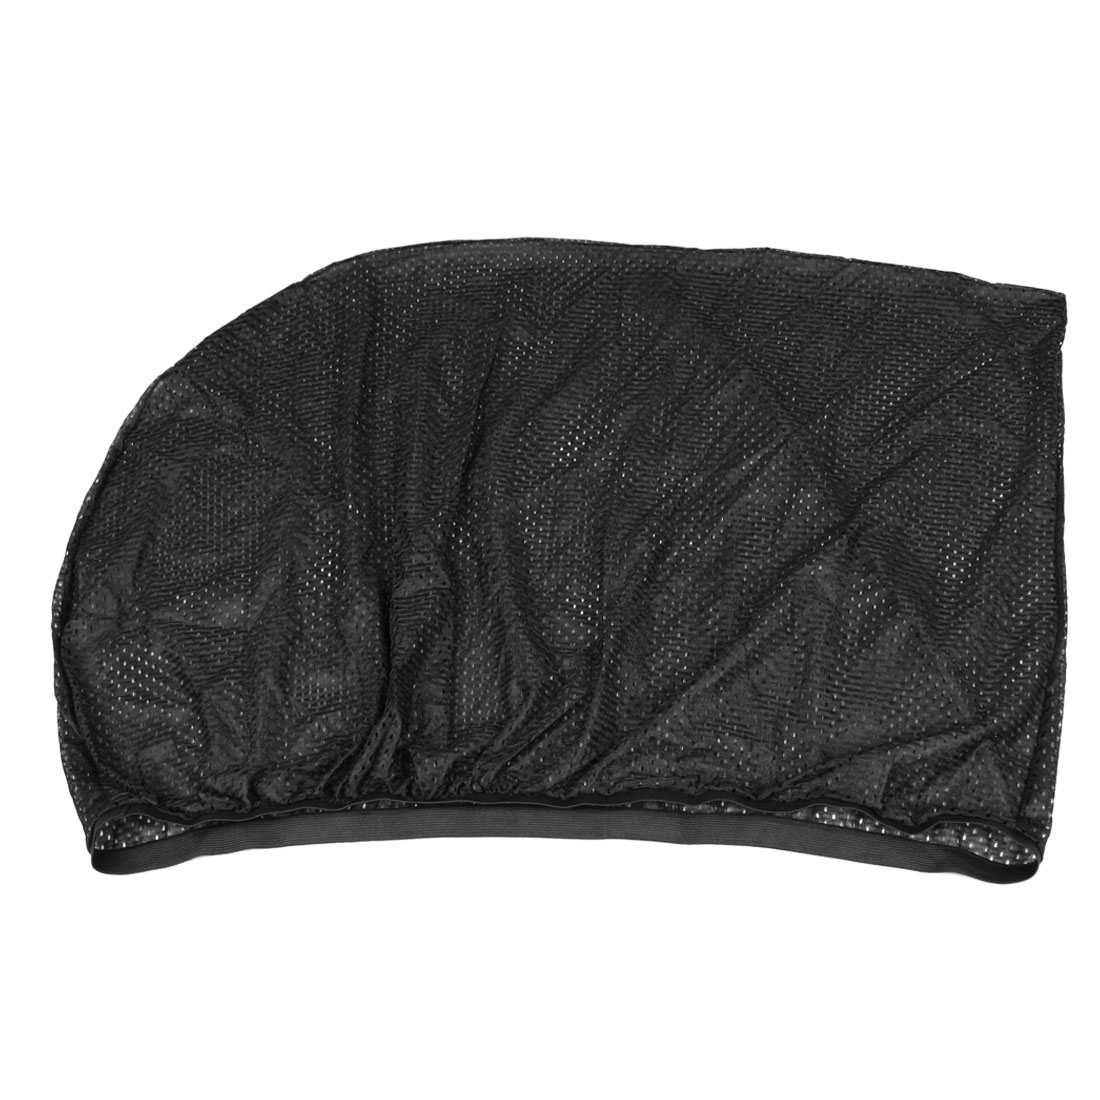 "27"" x 19"" Car Side Window Shade Sunshade Curtain Black"